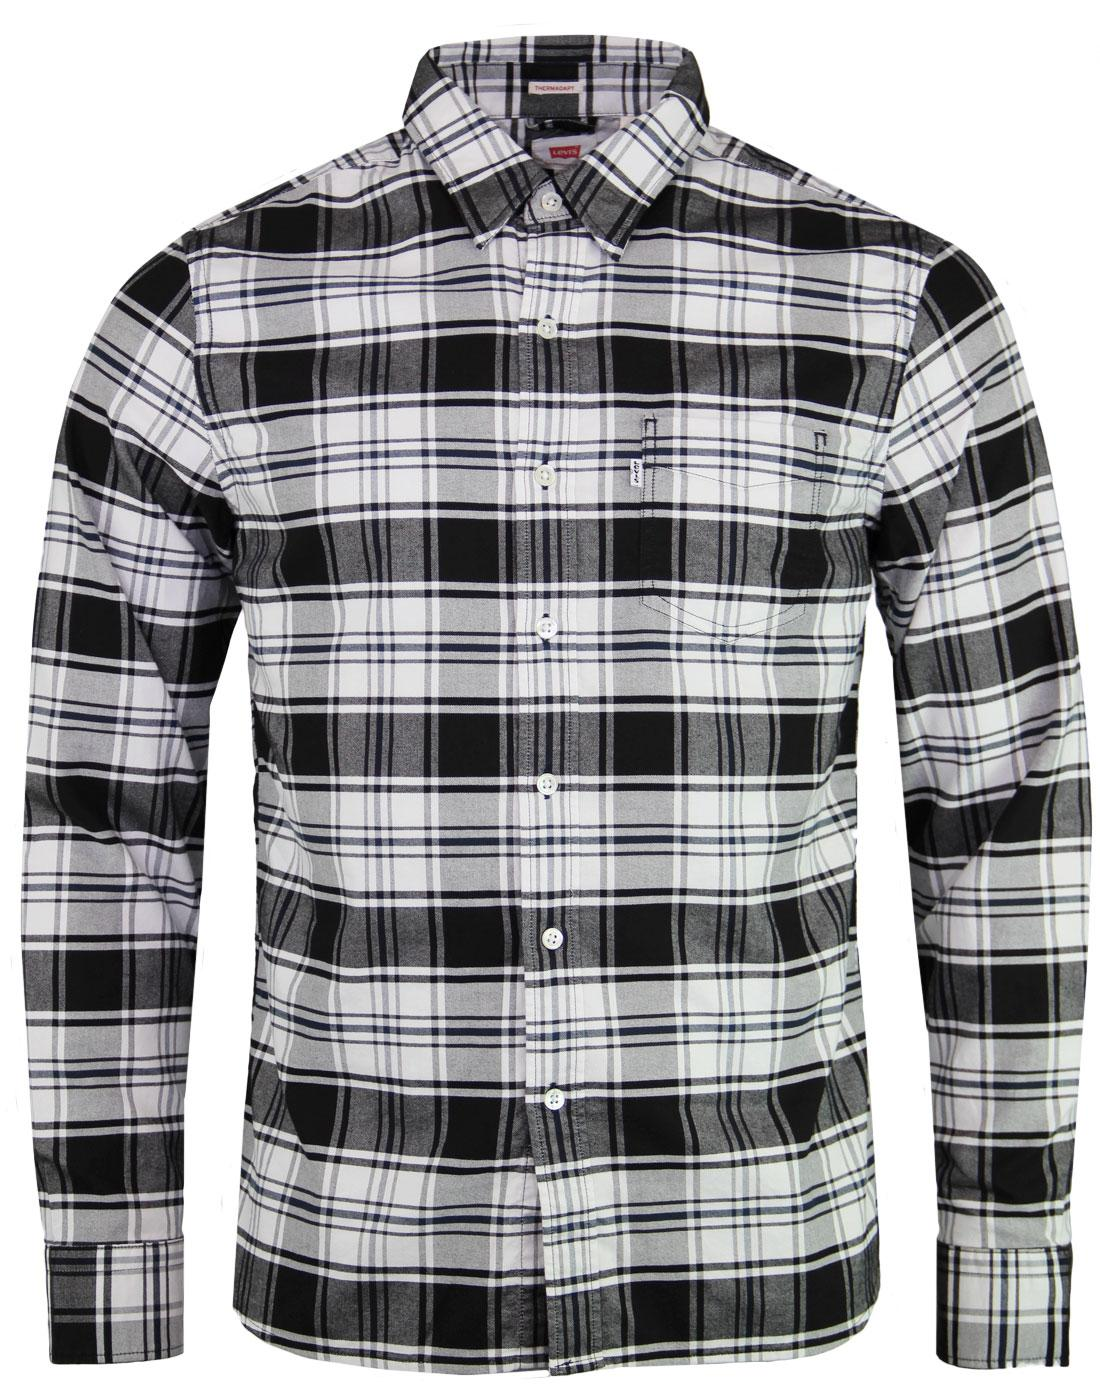 LEVI'S Sunset 1 Pocket Mod Thermadept Check Shirt